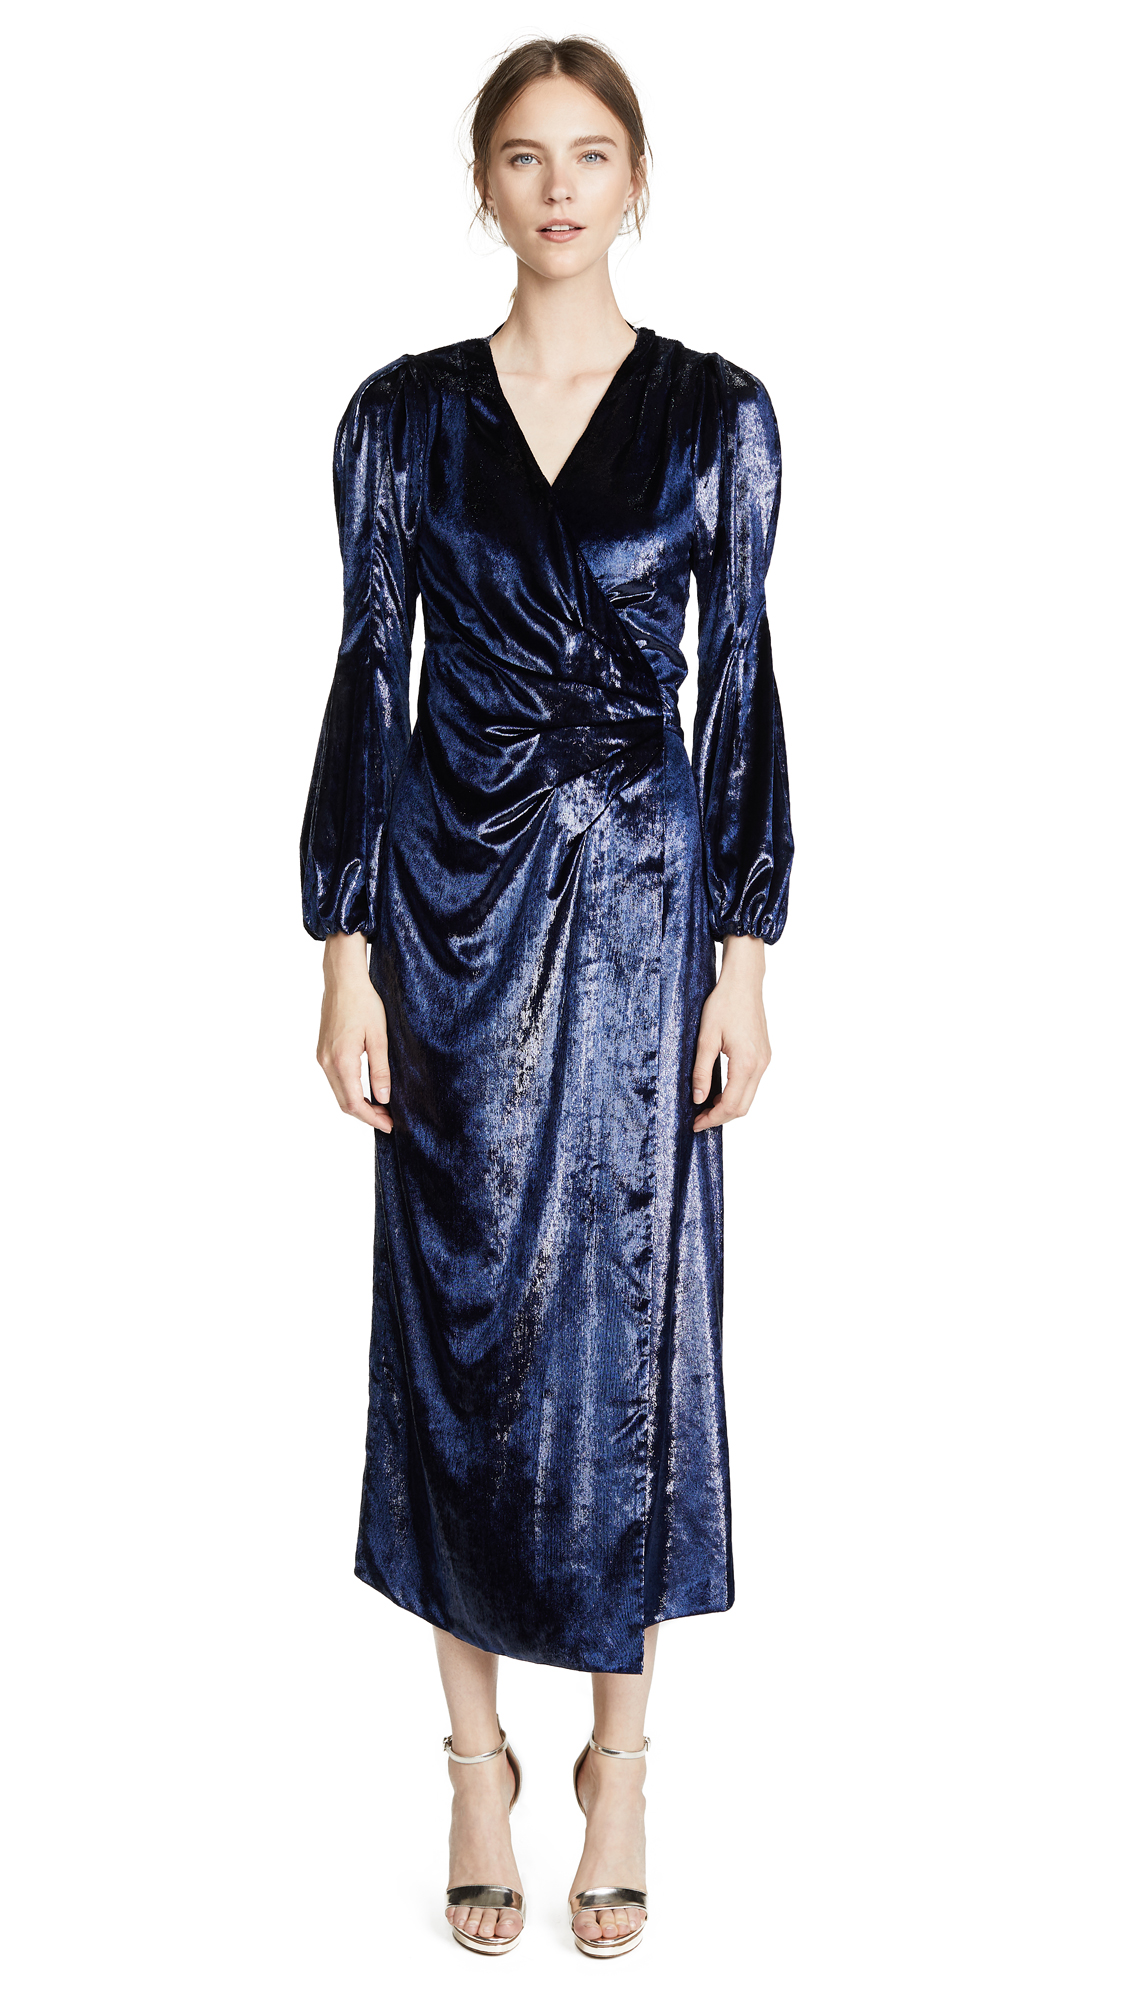 Maria Lucia Hohan Assia Dress In Navy